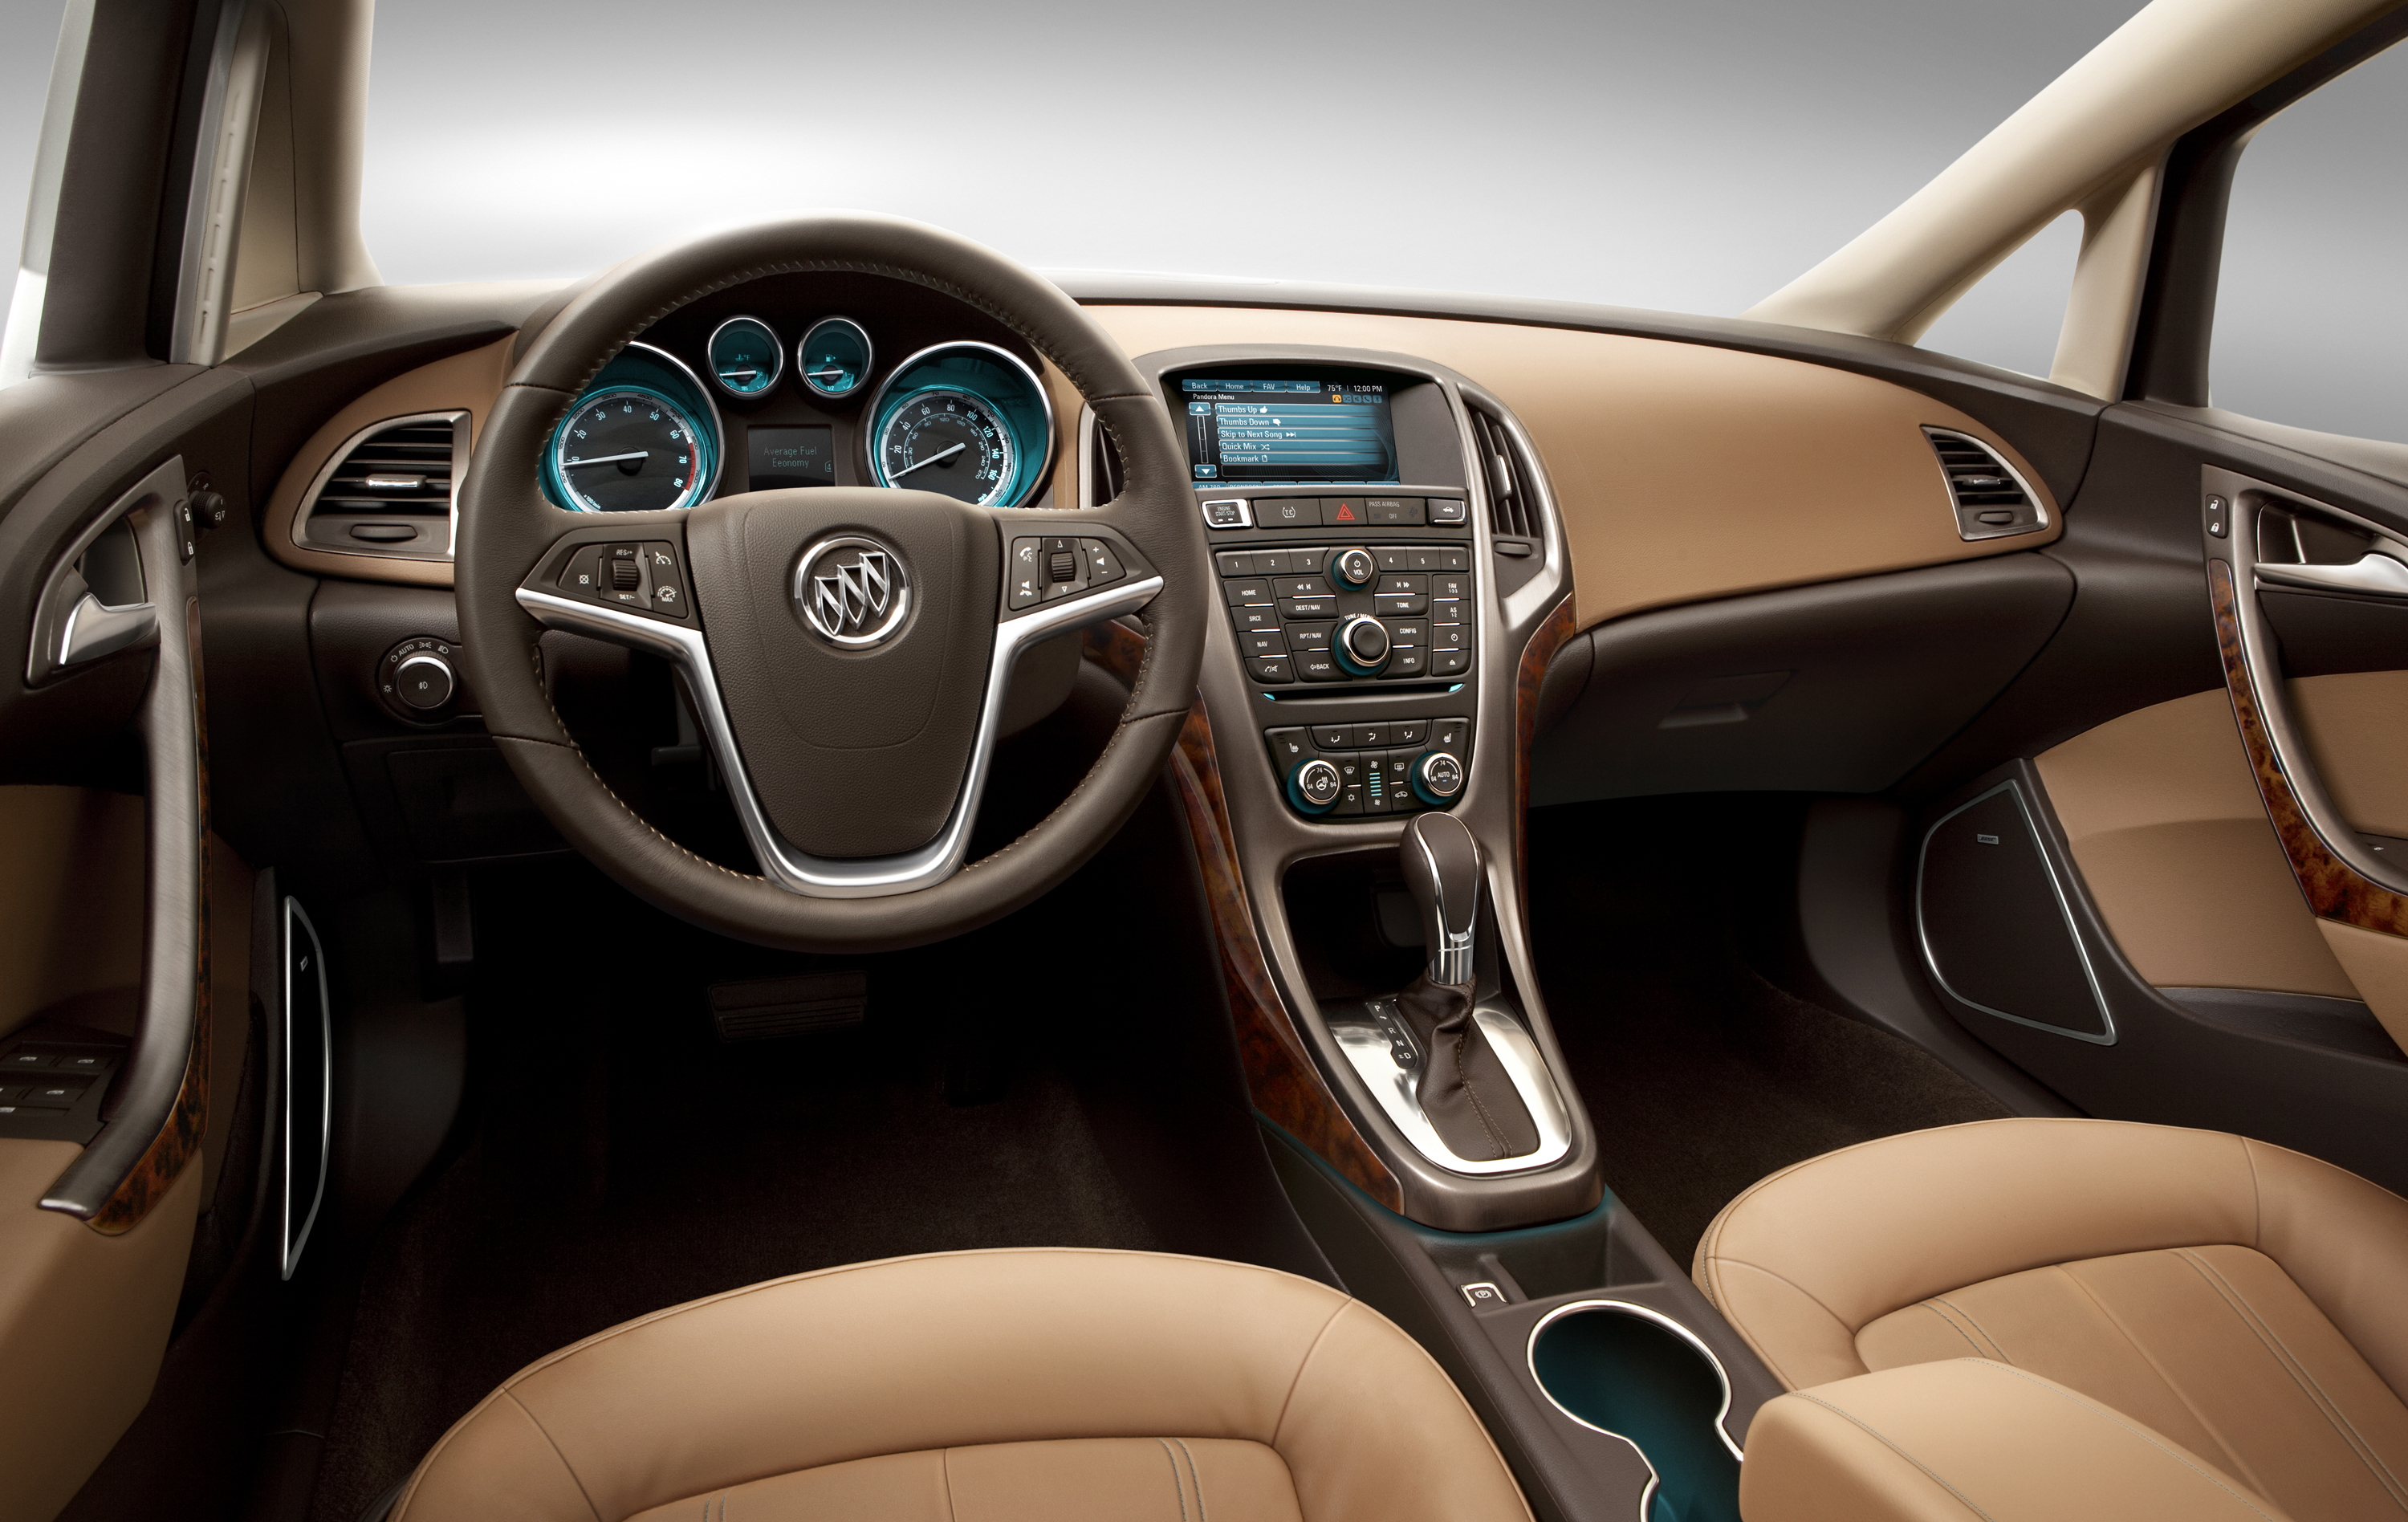 Verano Takes Quiet Tuning To New Level Of Refinement